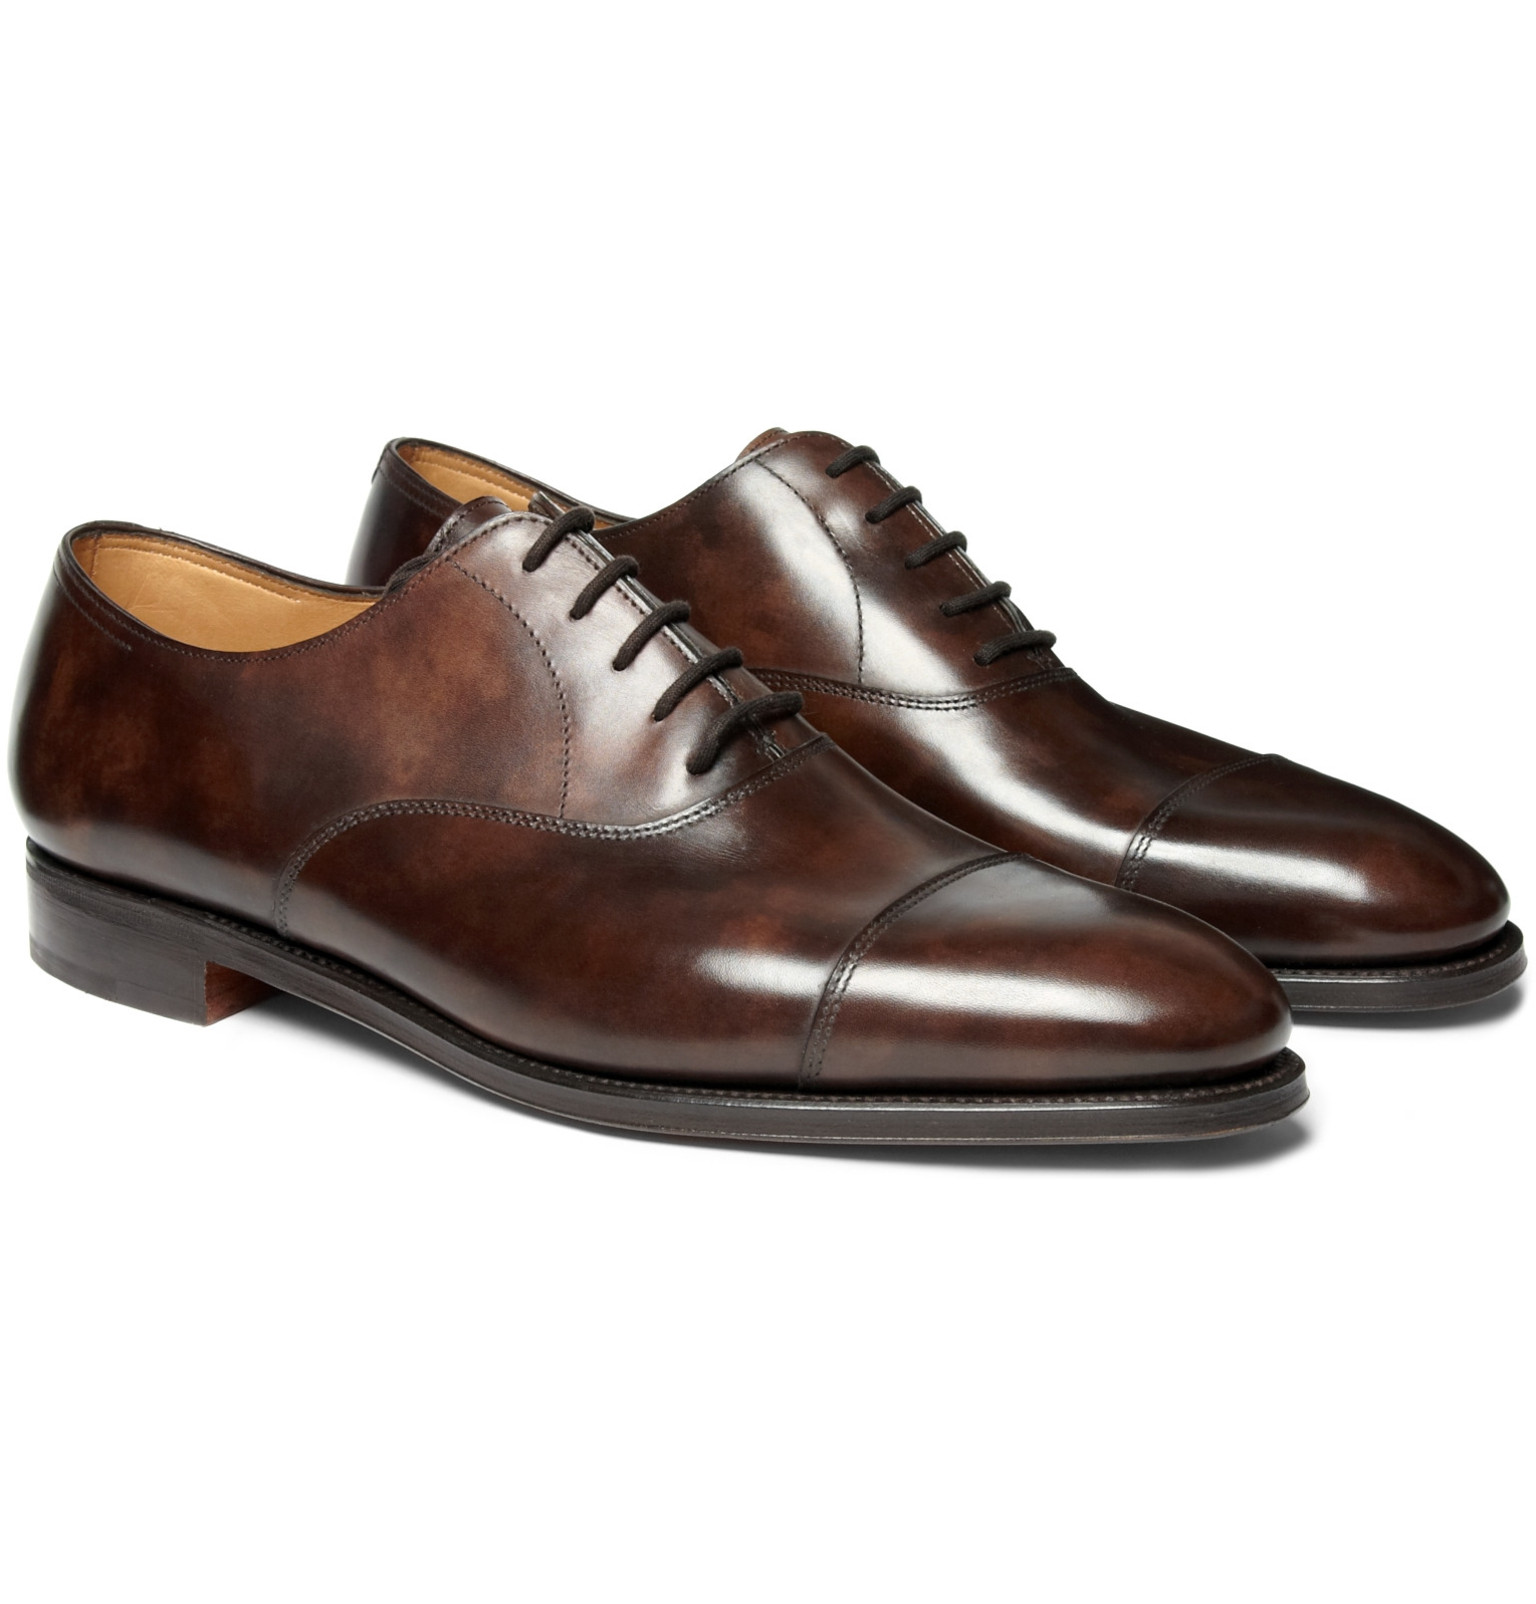 John Lobb City Ii Burnished Leather Oxford Shoes